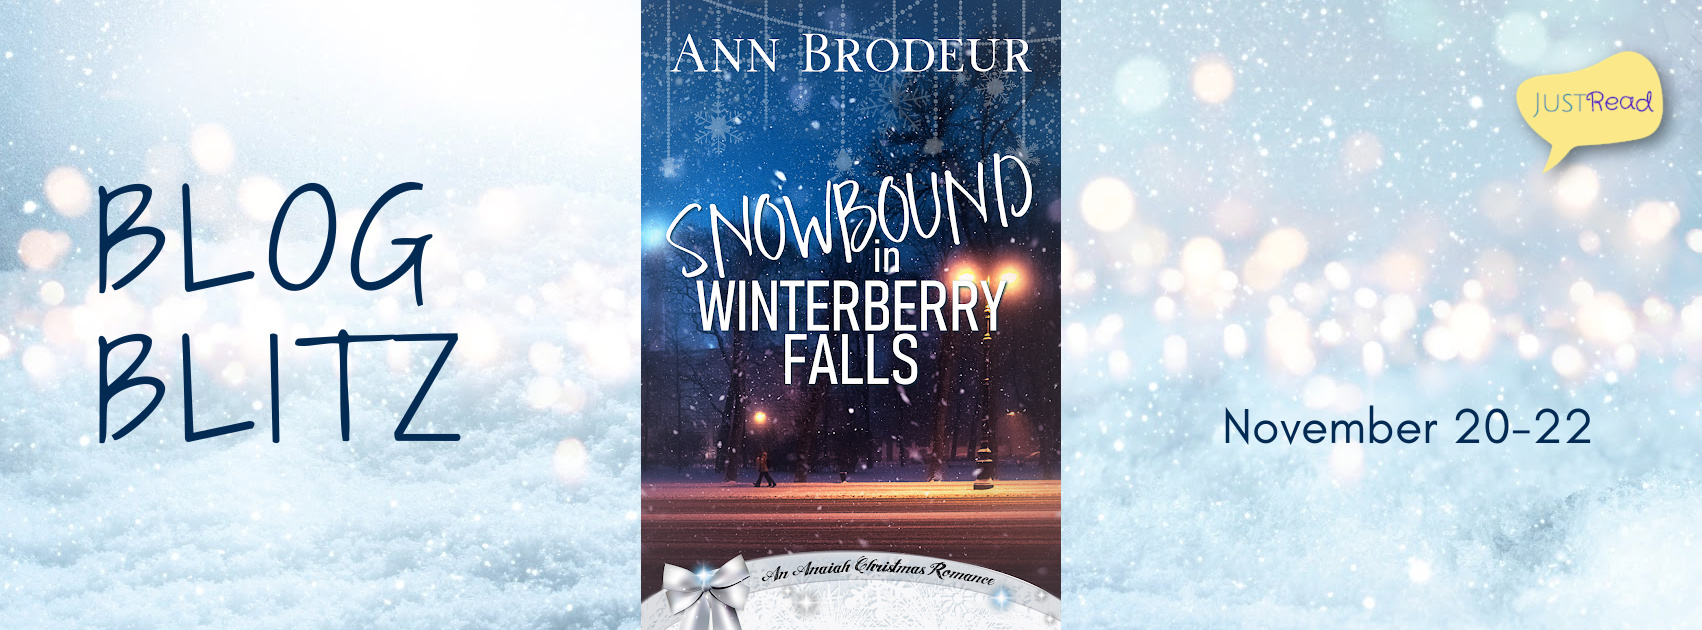 Welcome to the Snowbound in Winterberry Falls Blog Blitz & Giveaway!